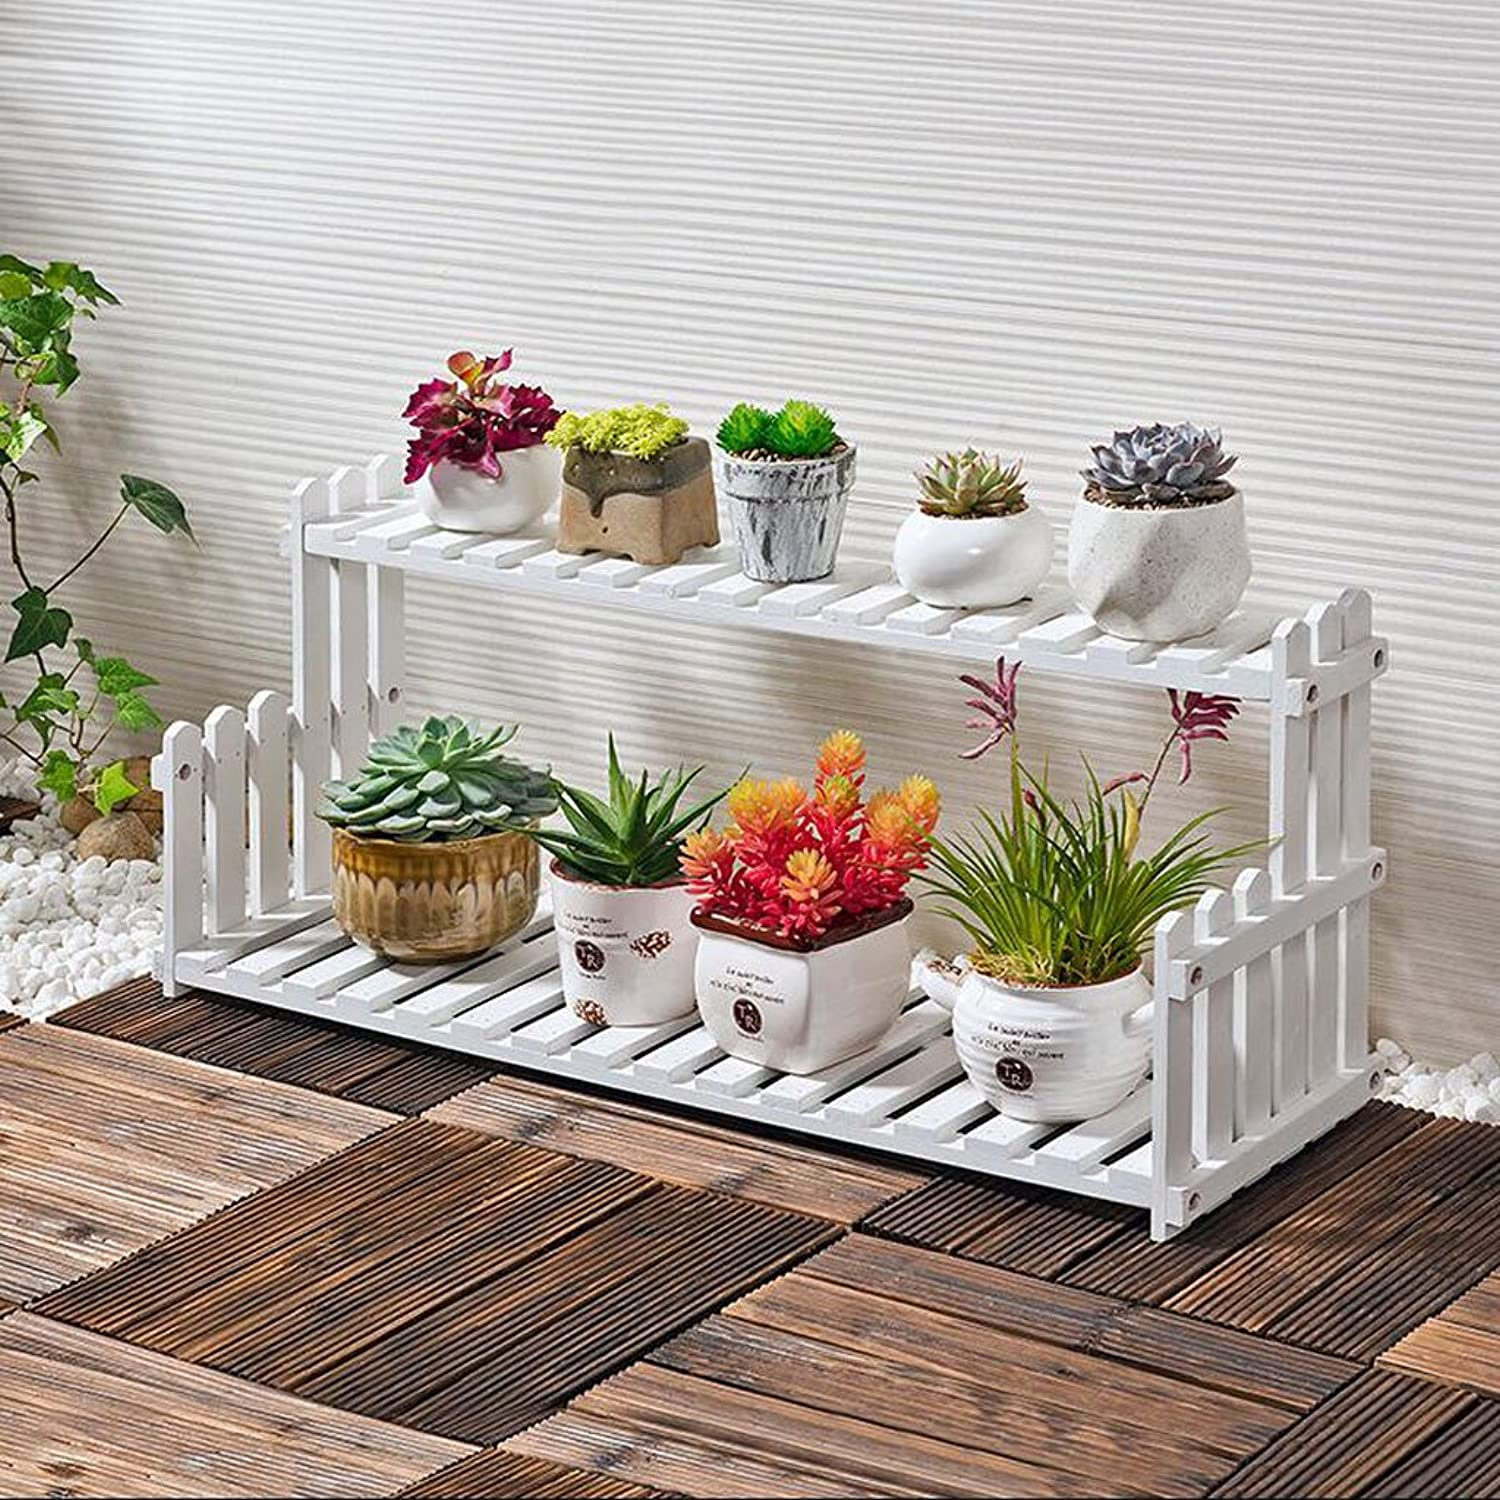 Flower stand Solid Wood flower stand Indoor Desktop Balcony flower stand Multi-Layer Floor Shelf Three-Dimensional flower stand (color   C, Size   L)